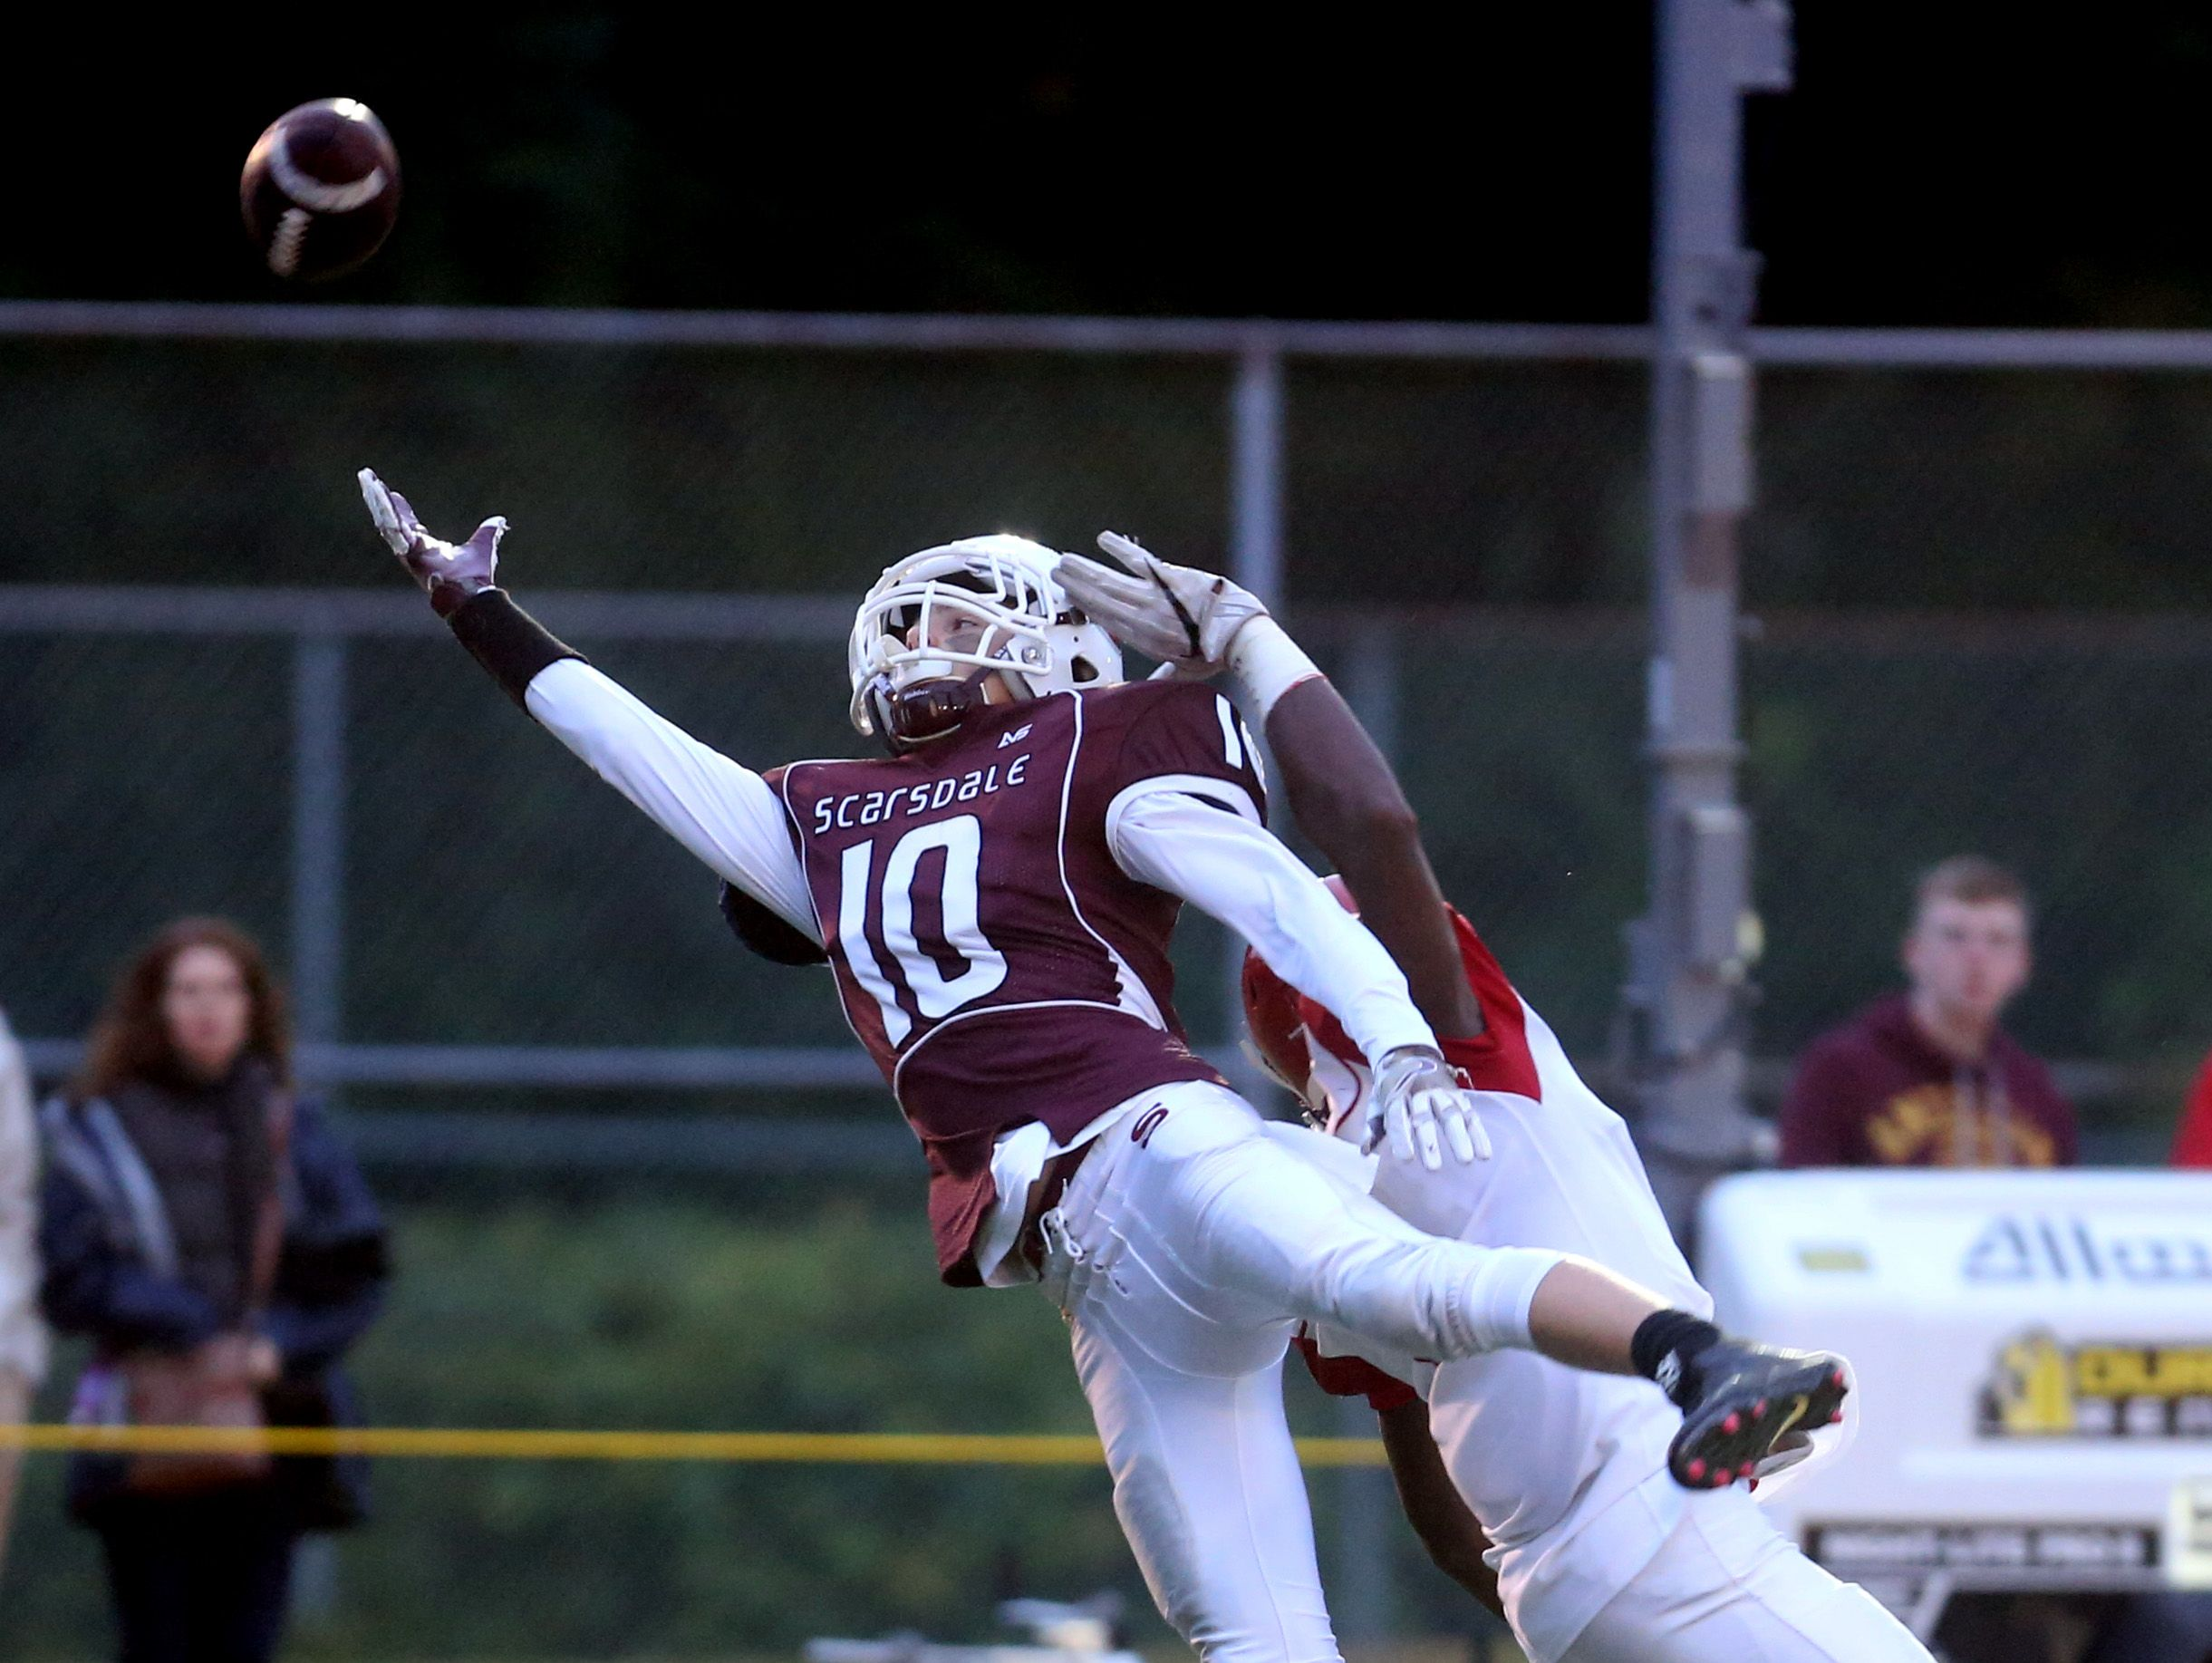 Scarsdale free safety Thomas Jacobson breaks up a pass intended for North Rockland's Jayden Cook during their game at Scarsdale High School on Friday. Scarsdale defeated North Rockland 31-7.